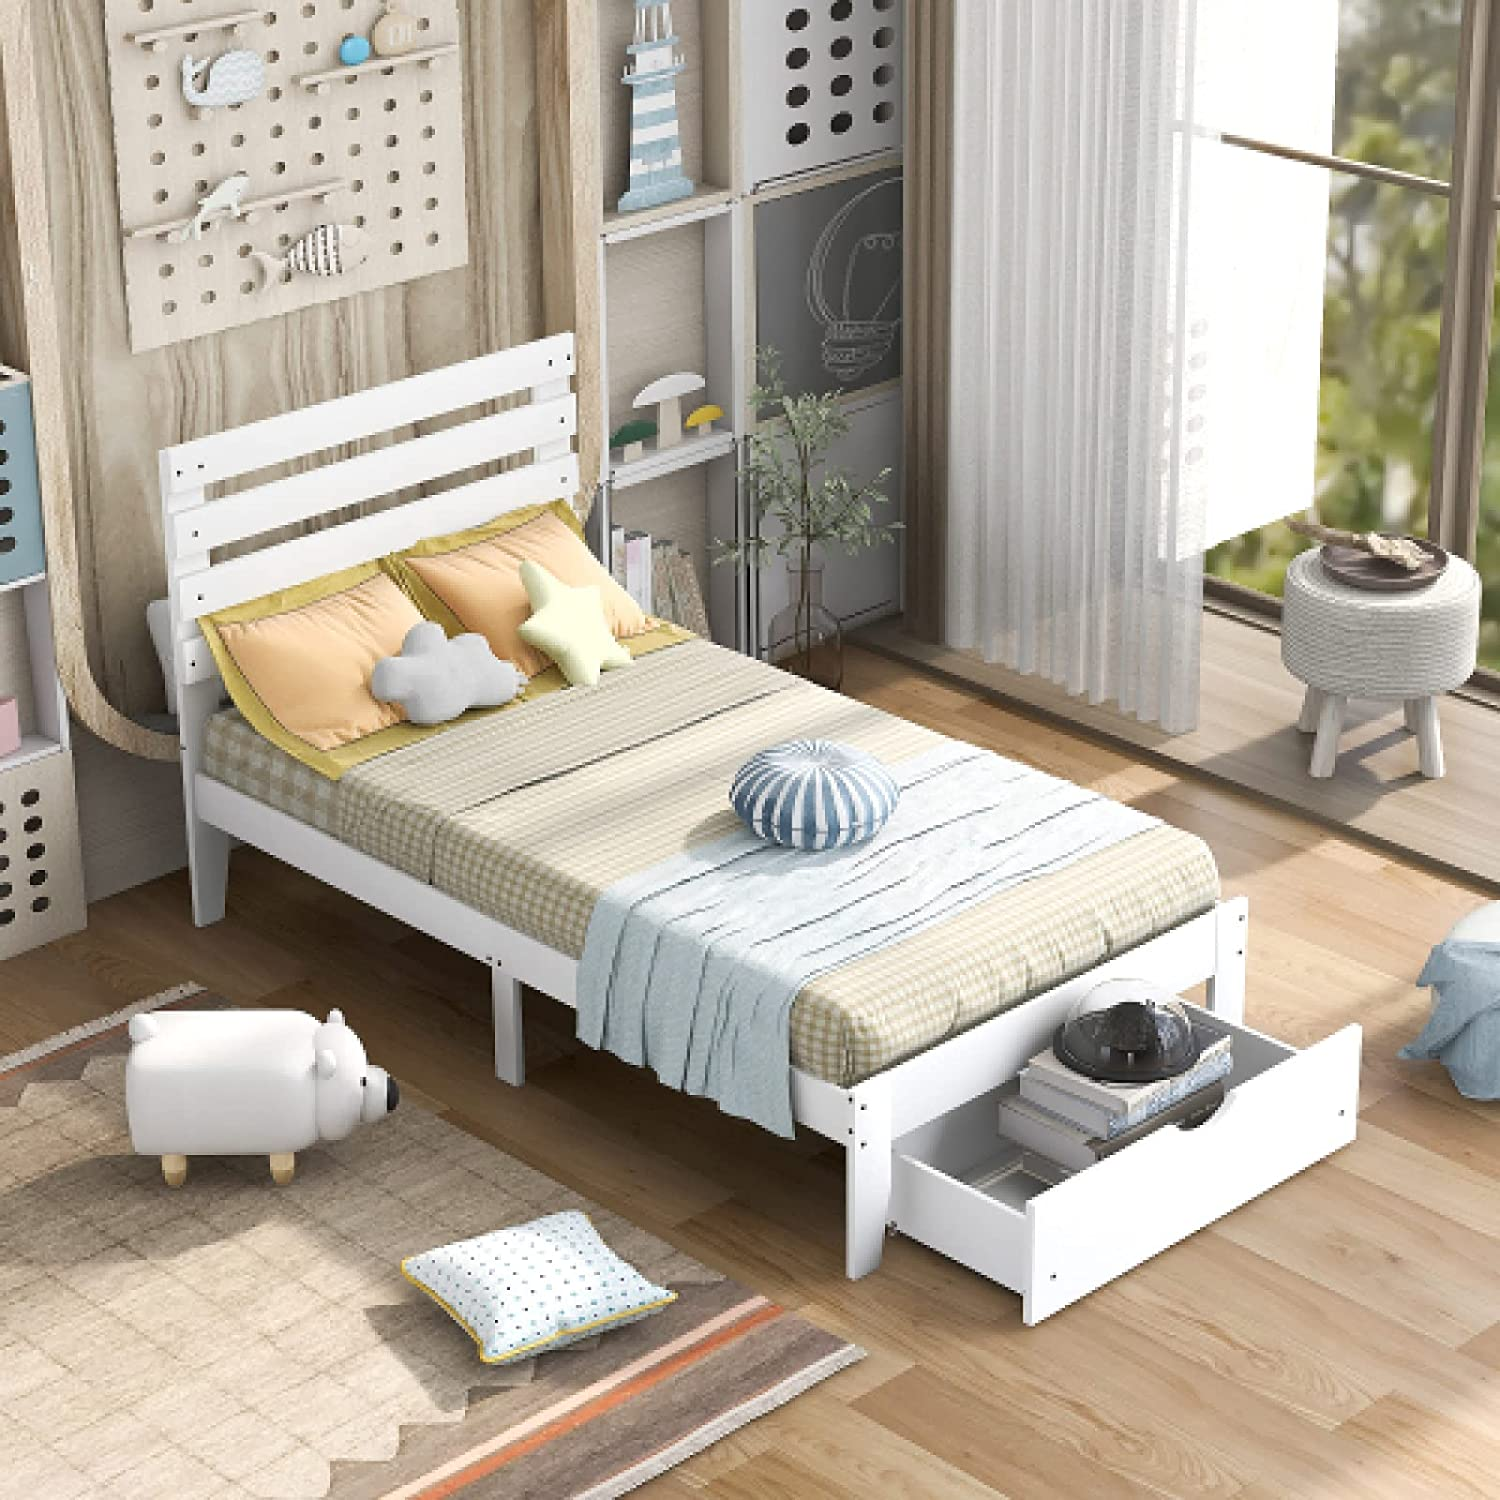 Twin Size Platform Bed with Drawer Wooden S Frame Fashion Super intense SALE Double Can